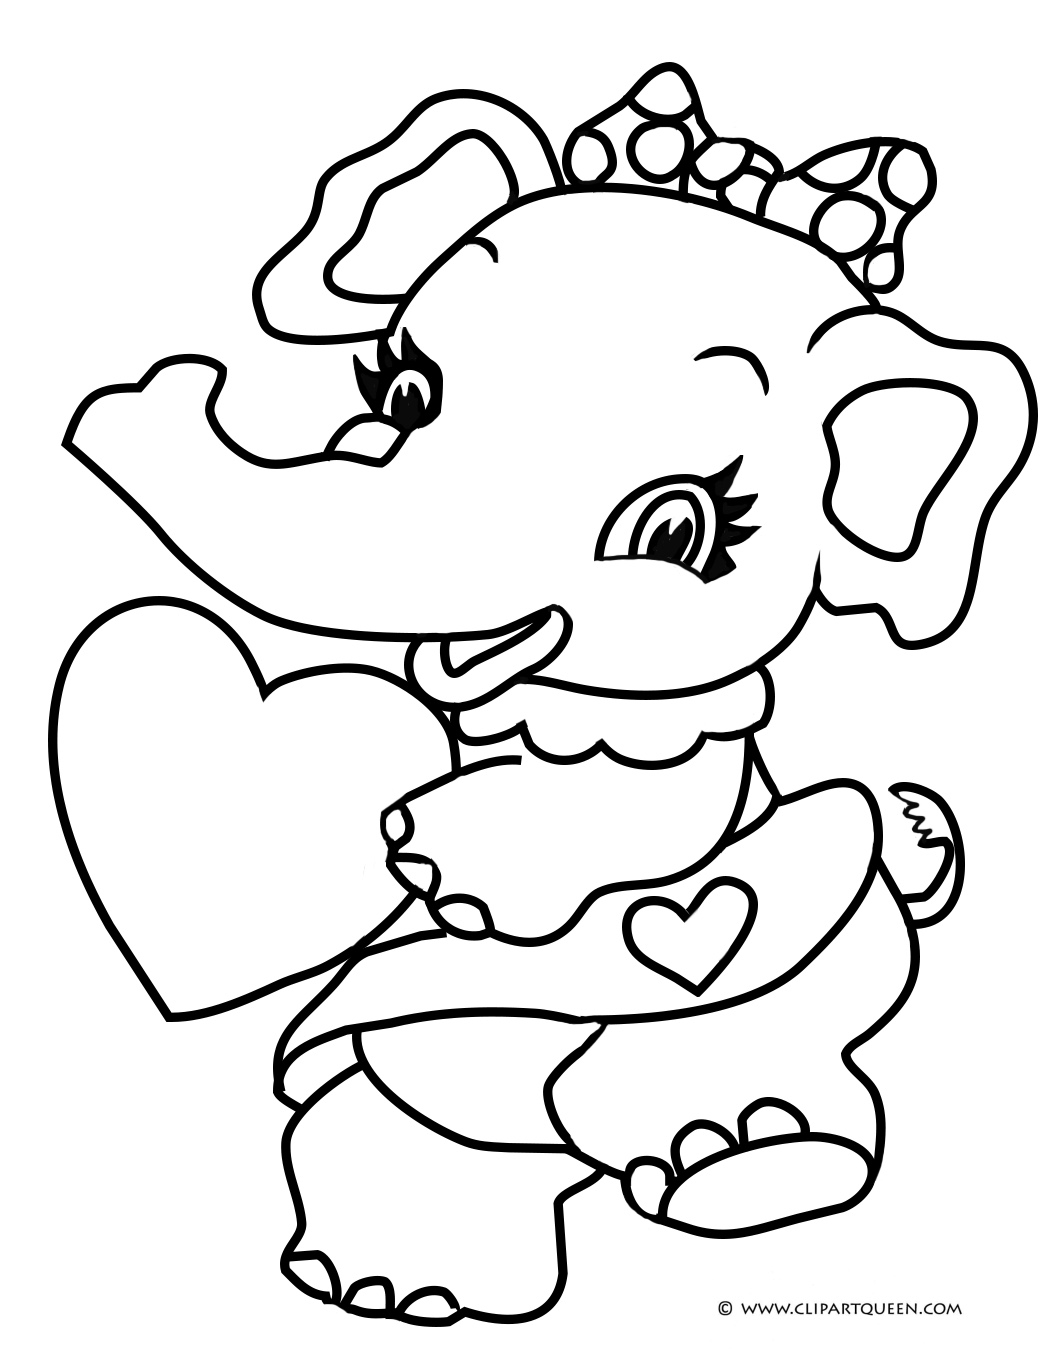 cute and funny valentines day coloring page - Valentines Coloring Pages